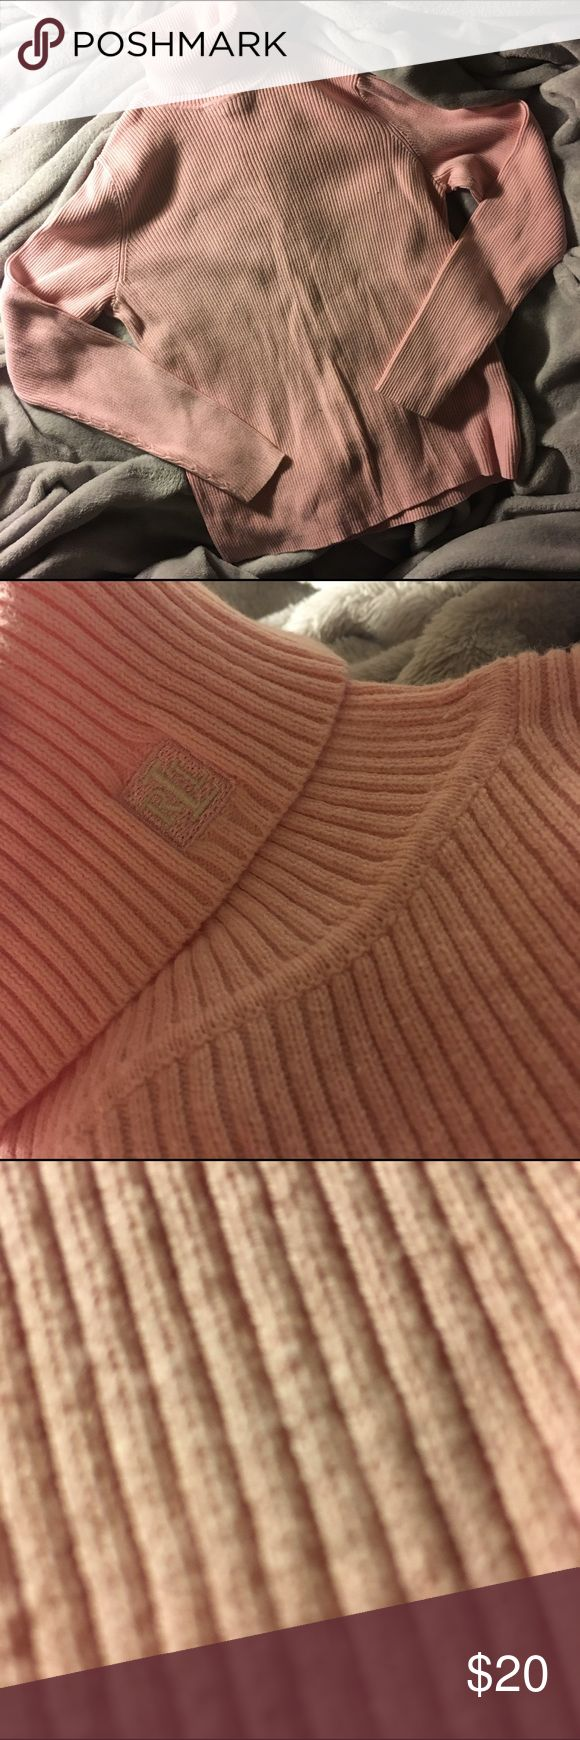 Ralph Laurent Turtleneck Sweater In good condition. Lauren Ralph Lauren Sweaters Cowl & Turtlenecks